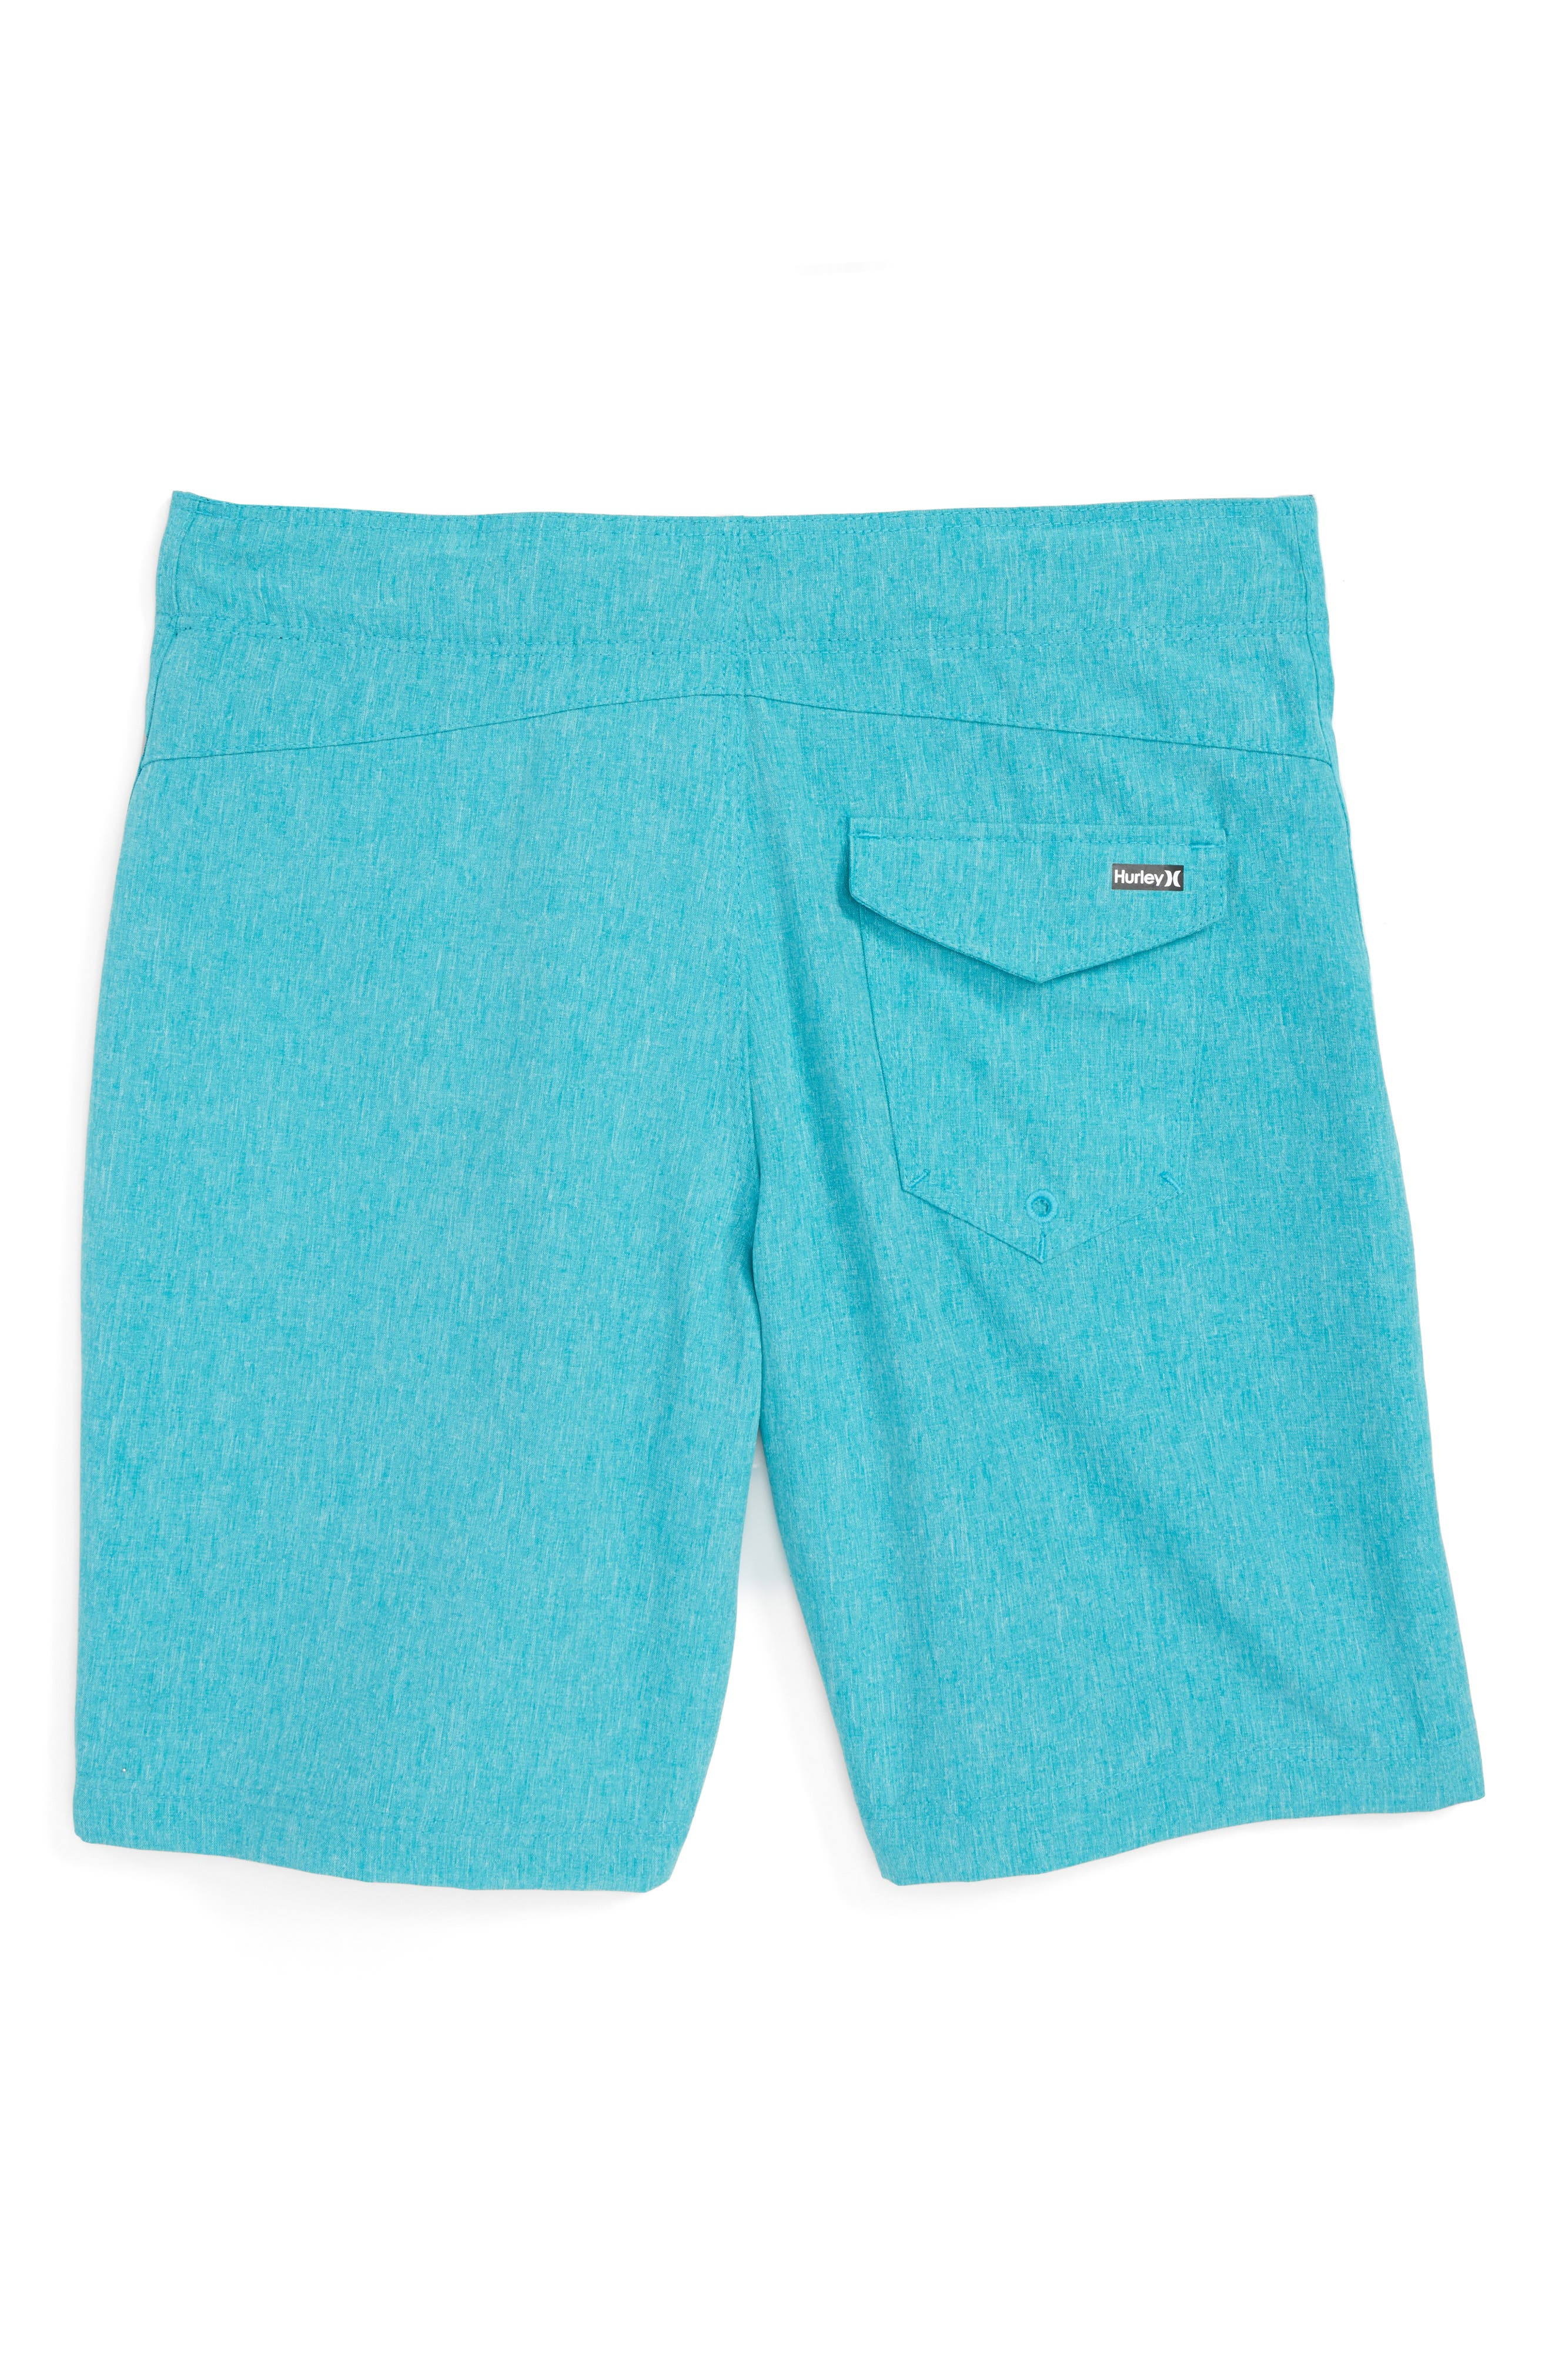 One and Only Dri-FIT Board Shorts,                             Alternate thumbnail 8, color,